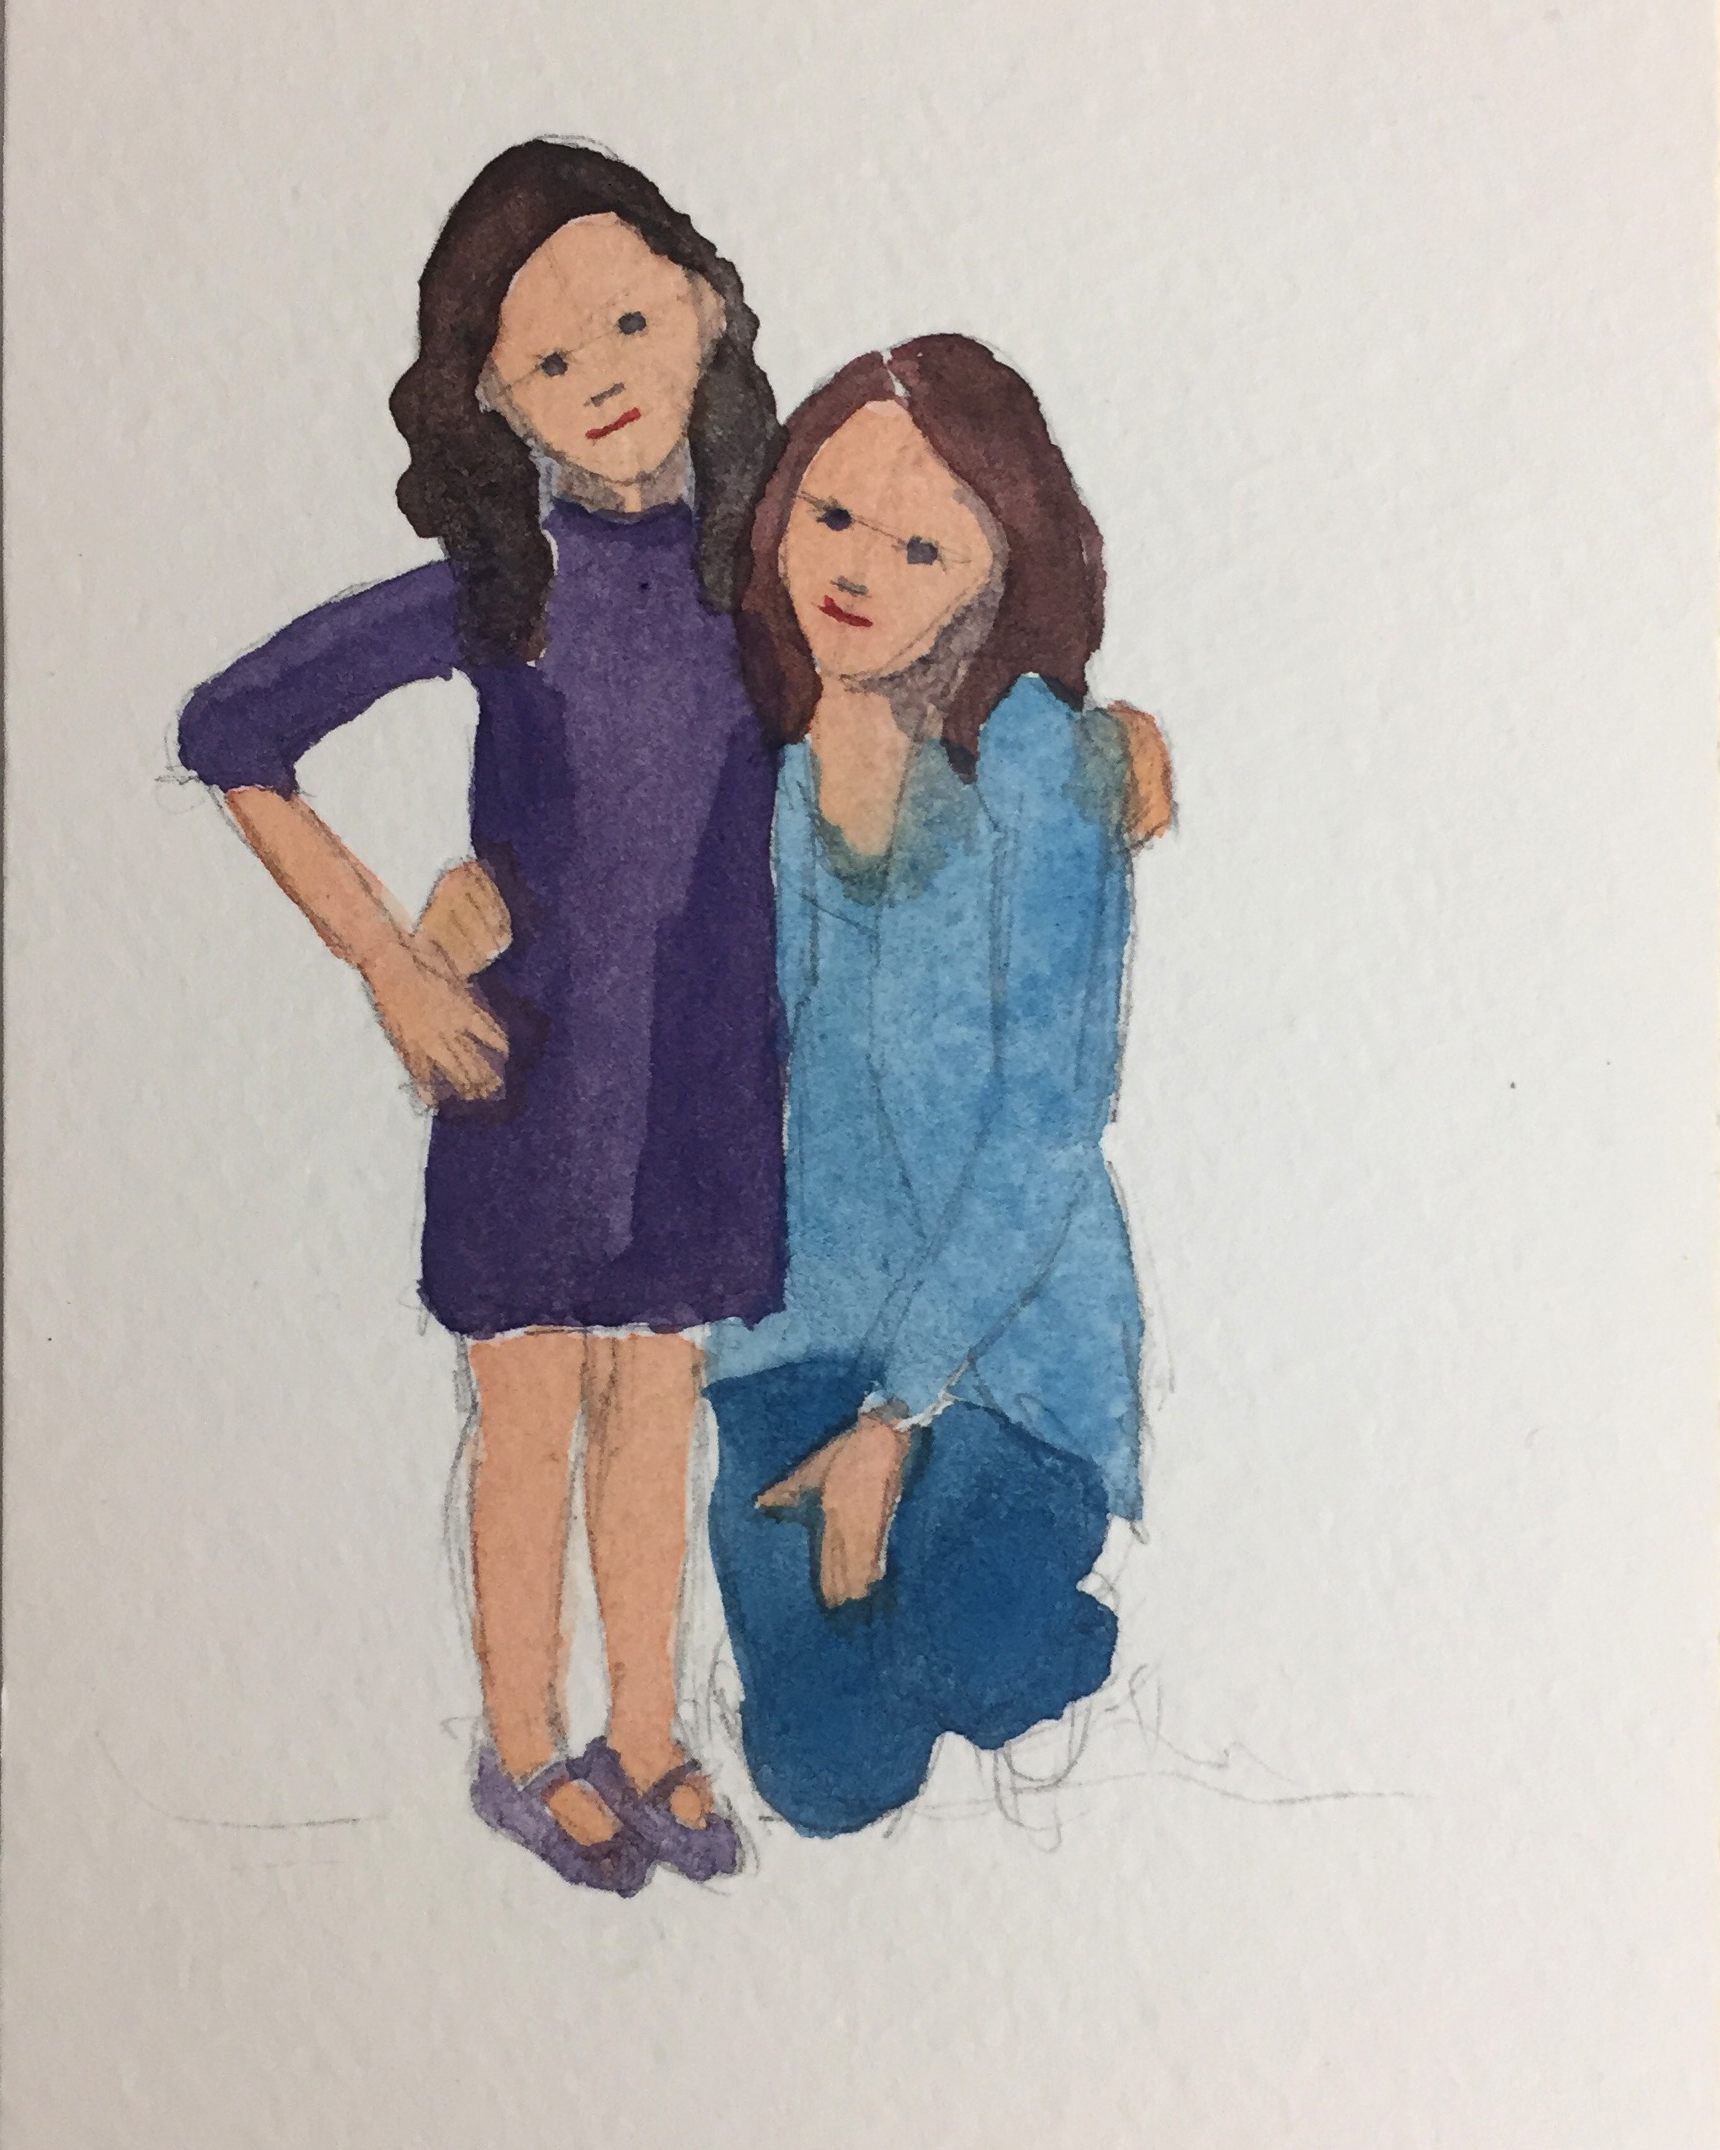 Day 98: A watercolor illustration of Naomi and me. Naomi asked me to dress her in purple, her favorite color and I am in blue, my favorite color to wear when I am not standing behind an easel :)